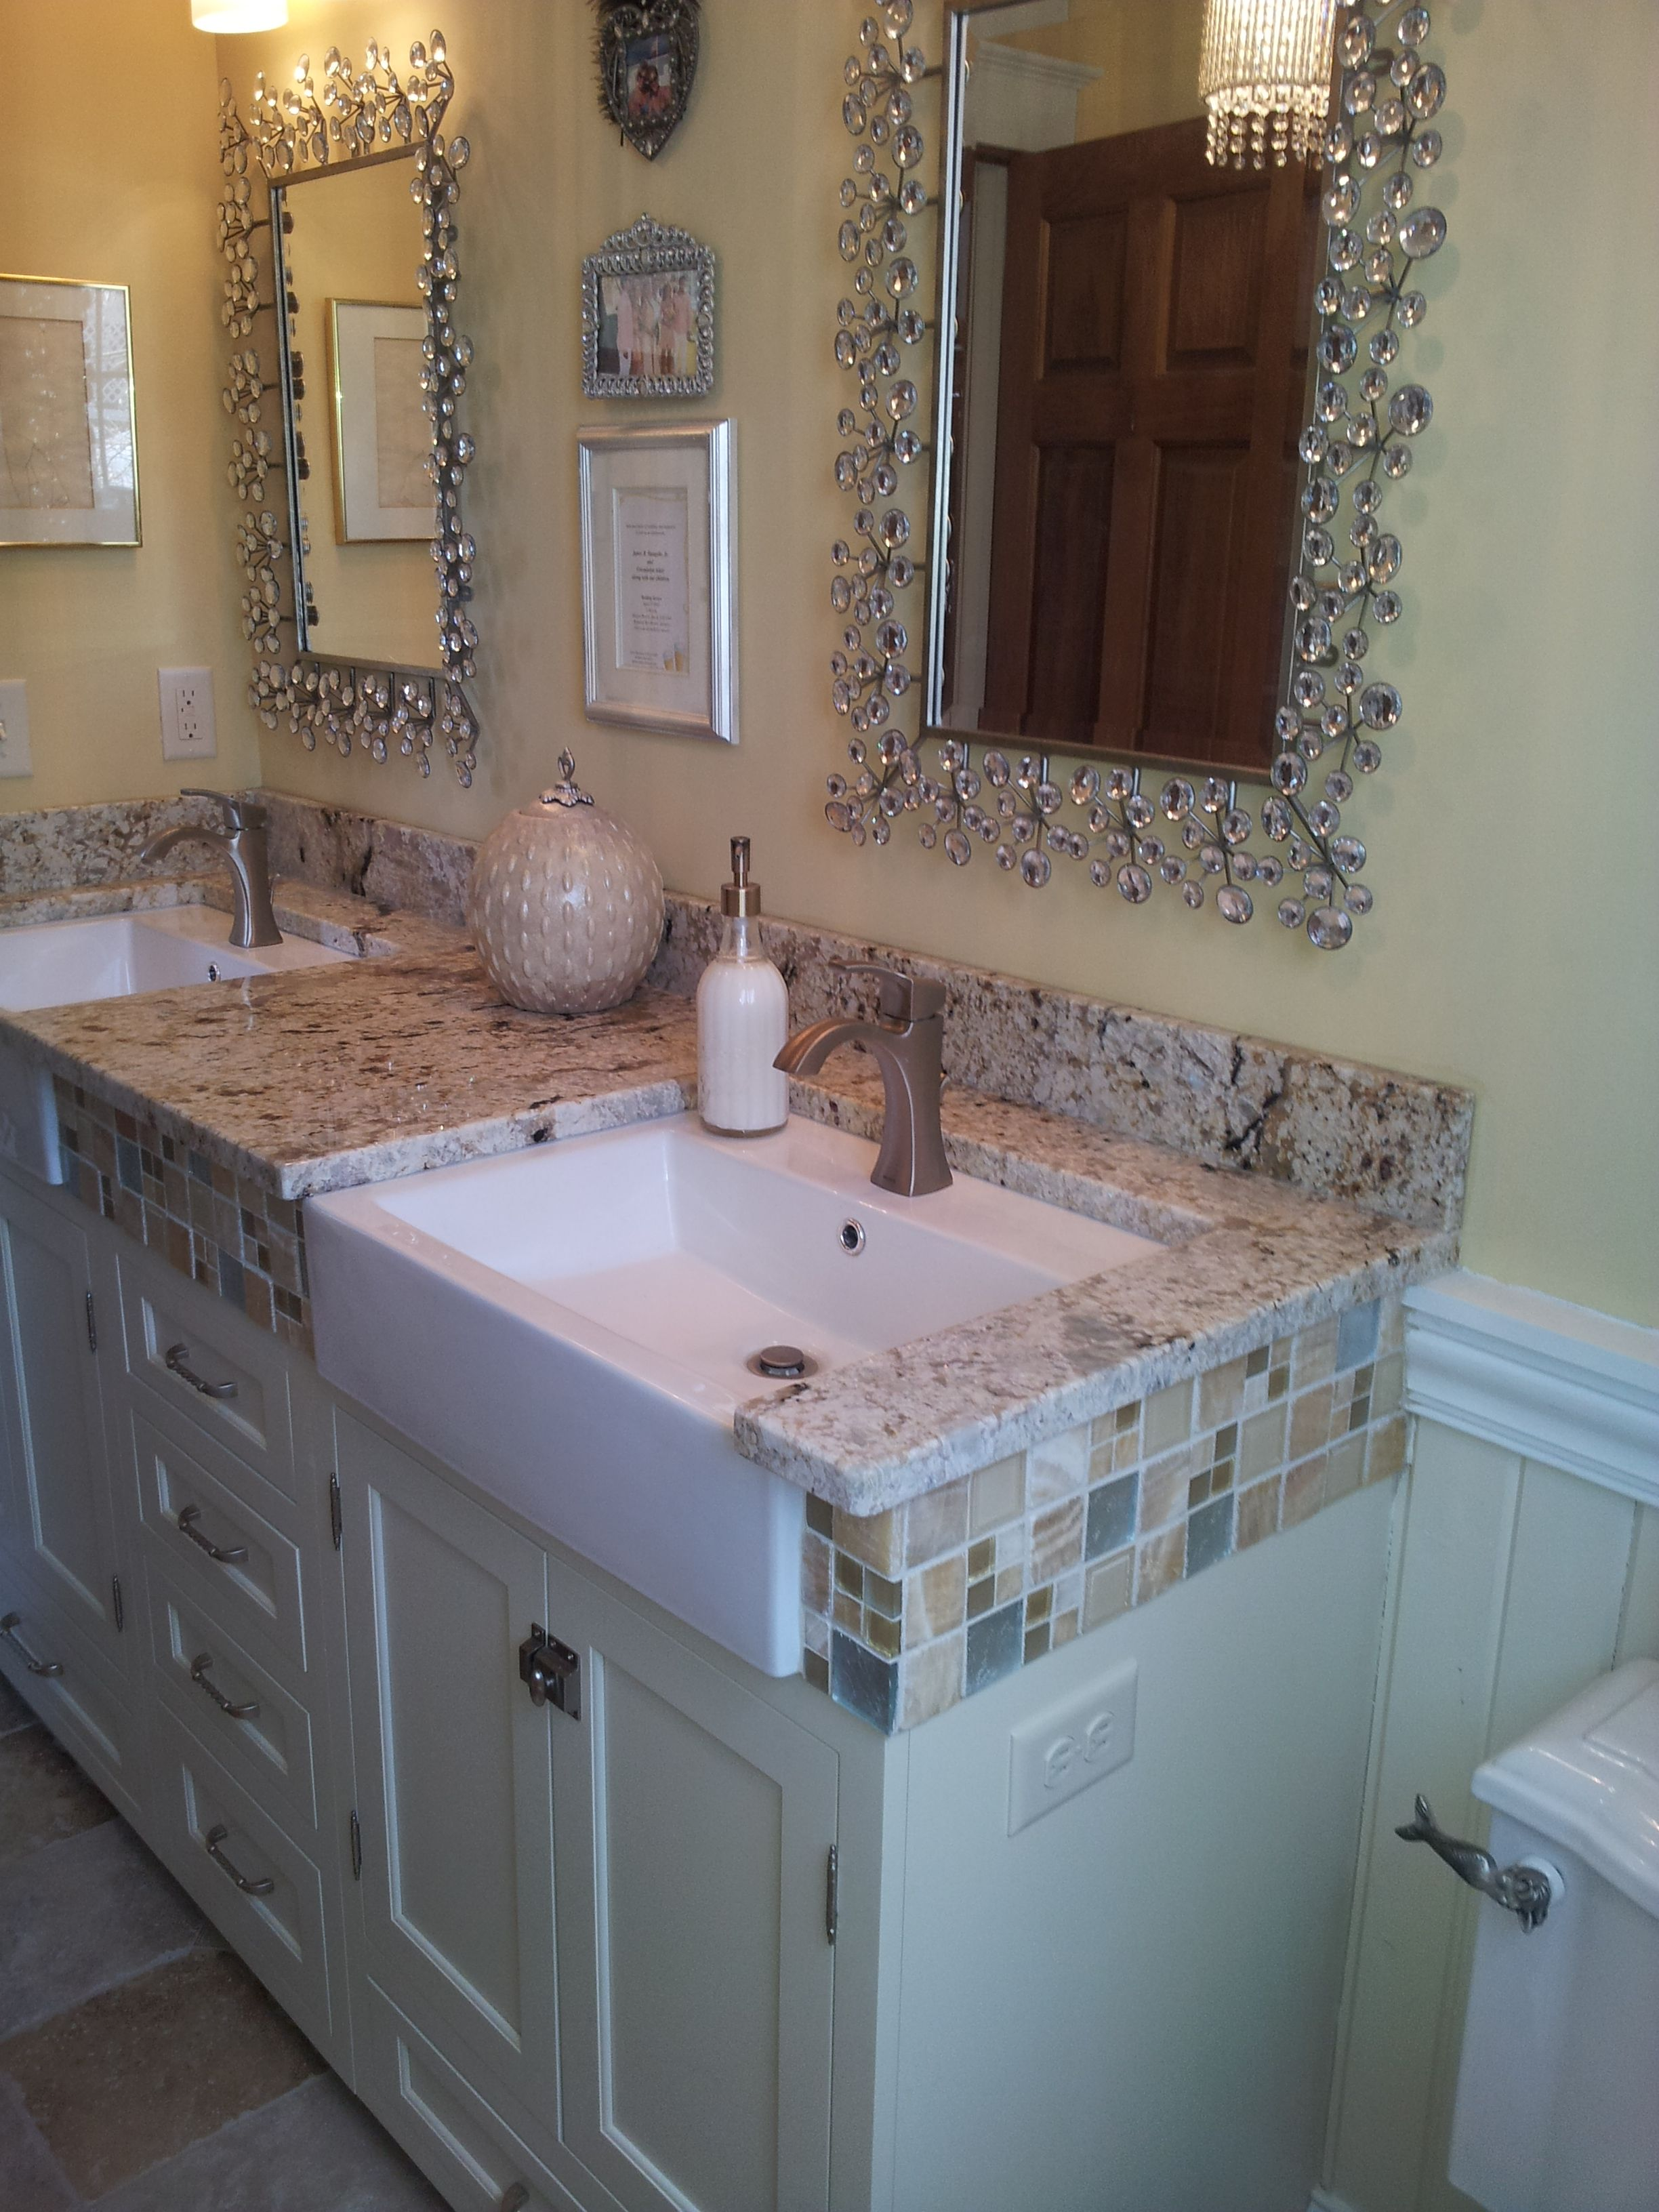 Great Use Of Tile In A Dura Supreme #bathroom #vanity #remodel Amazing When Remodeling Bathroom Where To Start Decorating Design